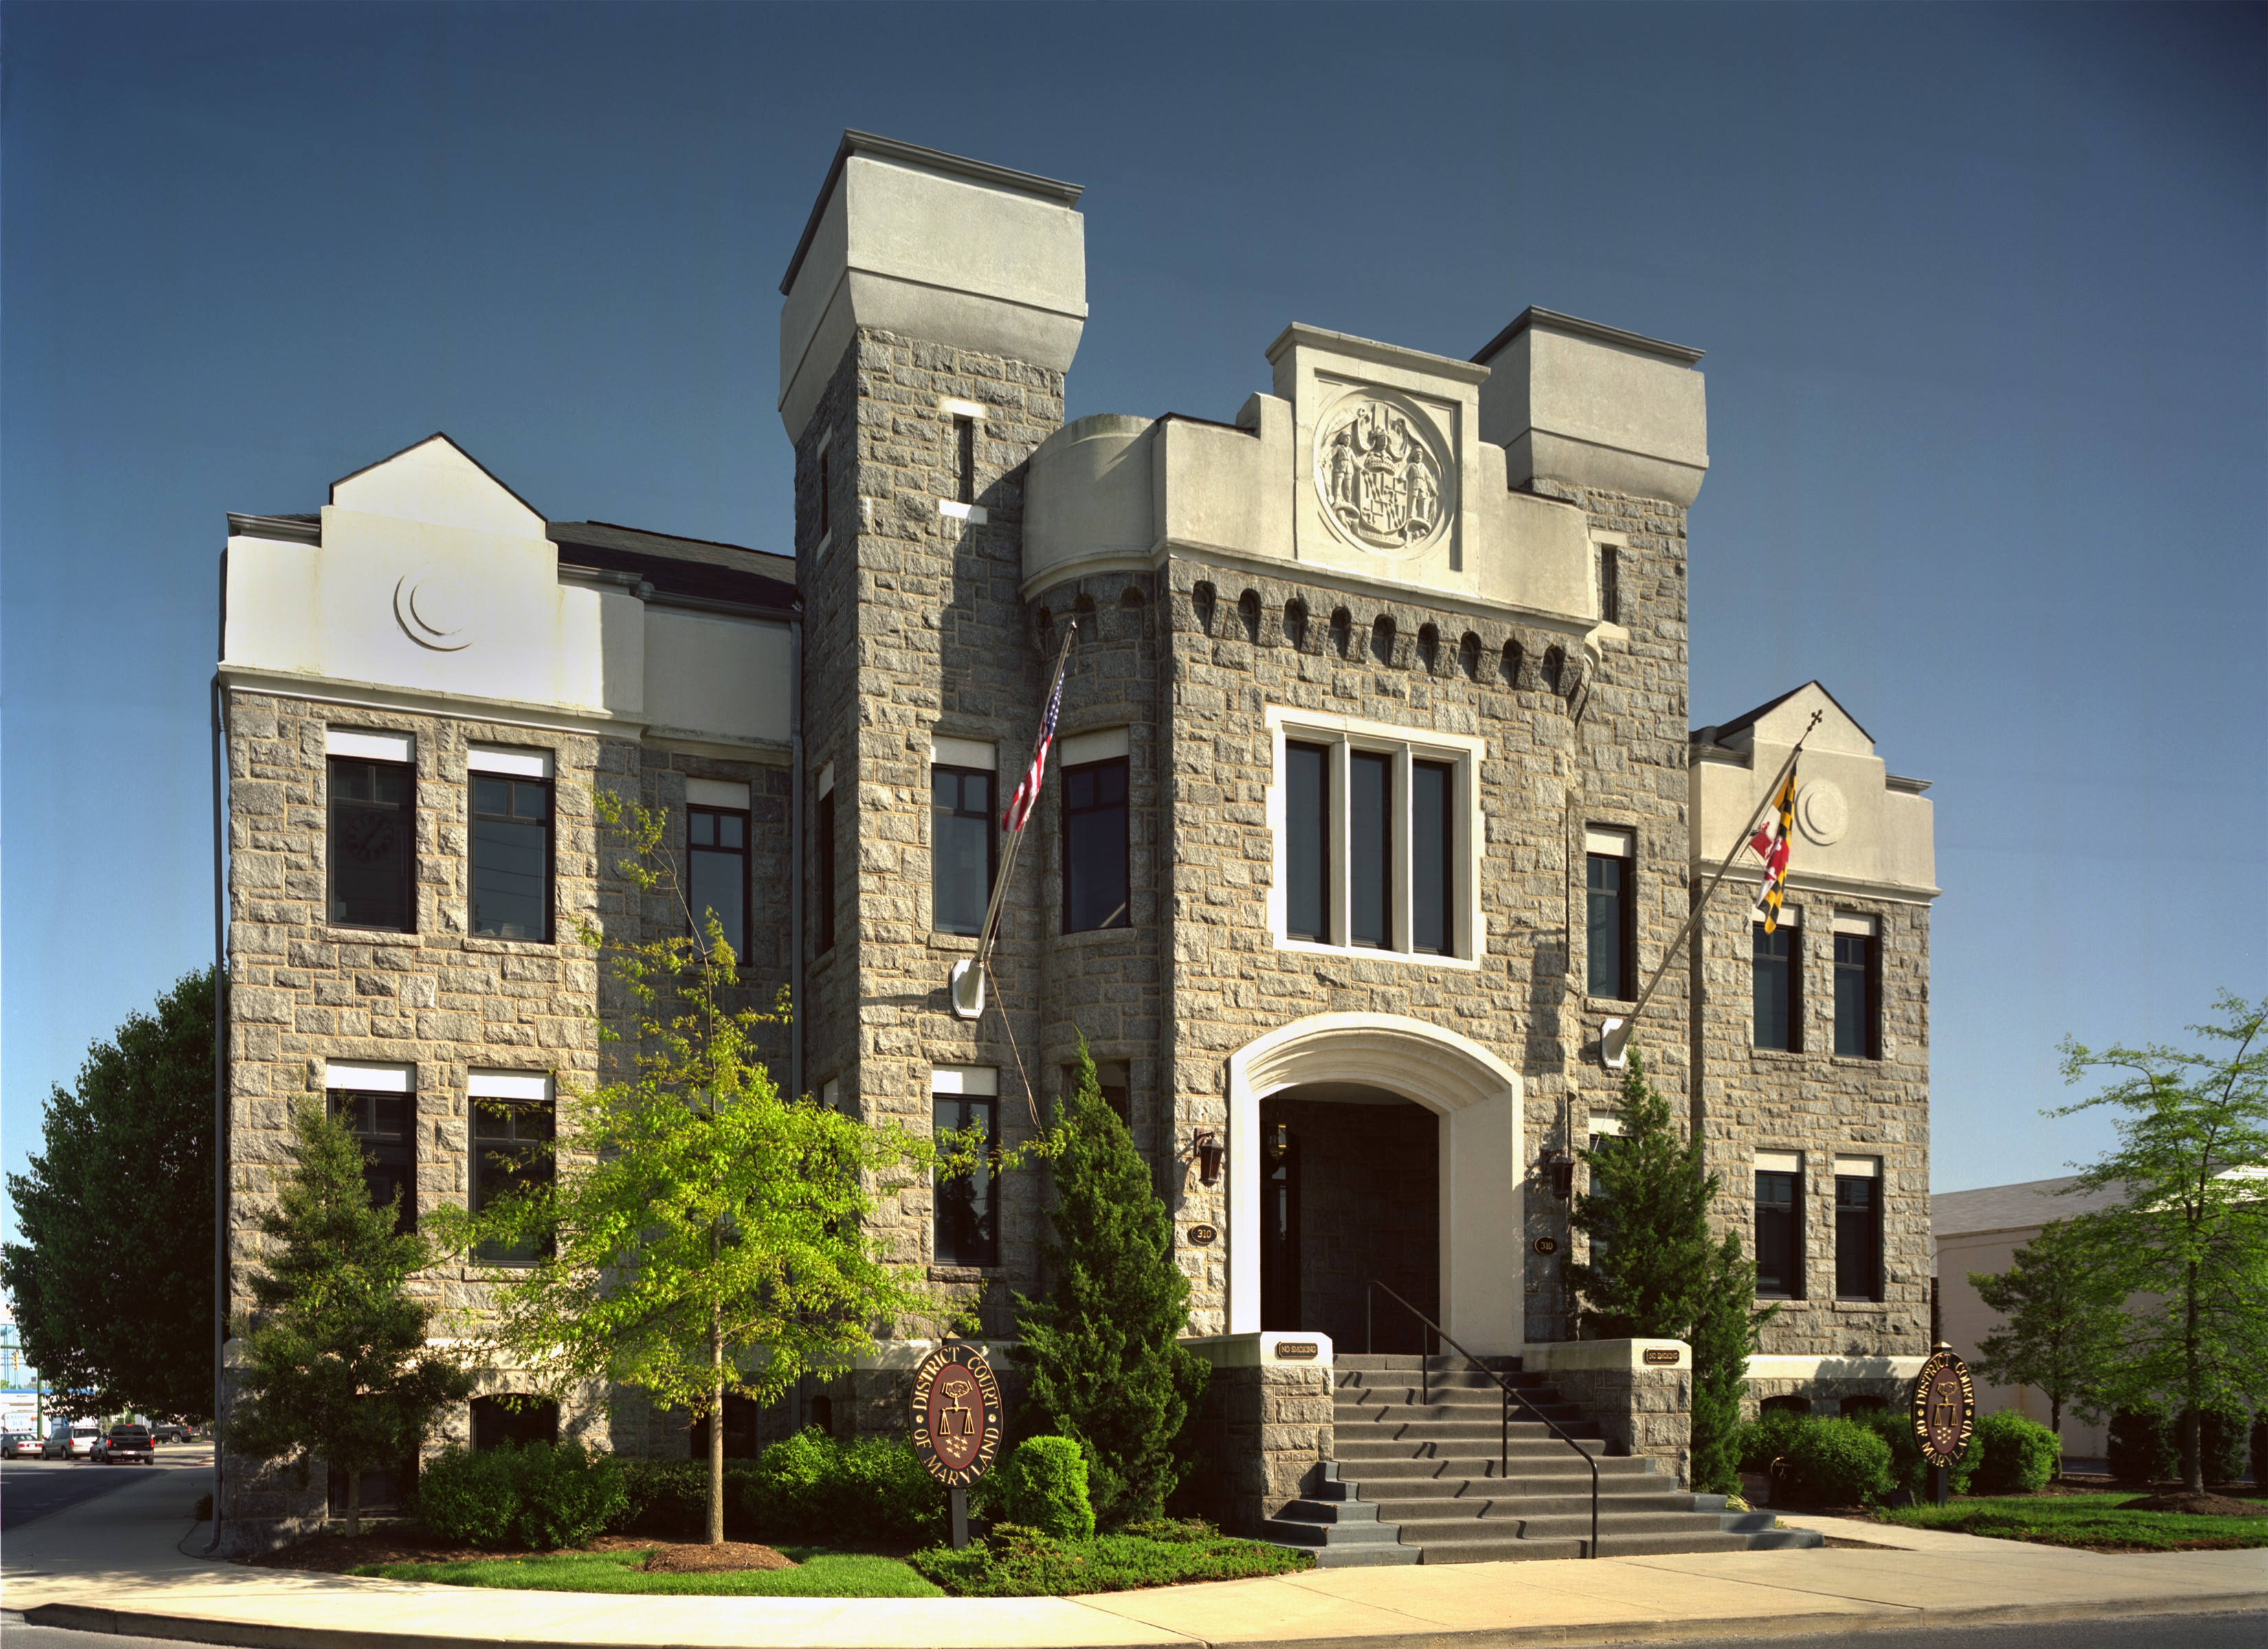 Dorchester County District Court